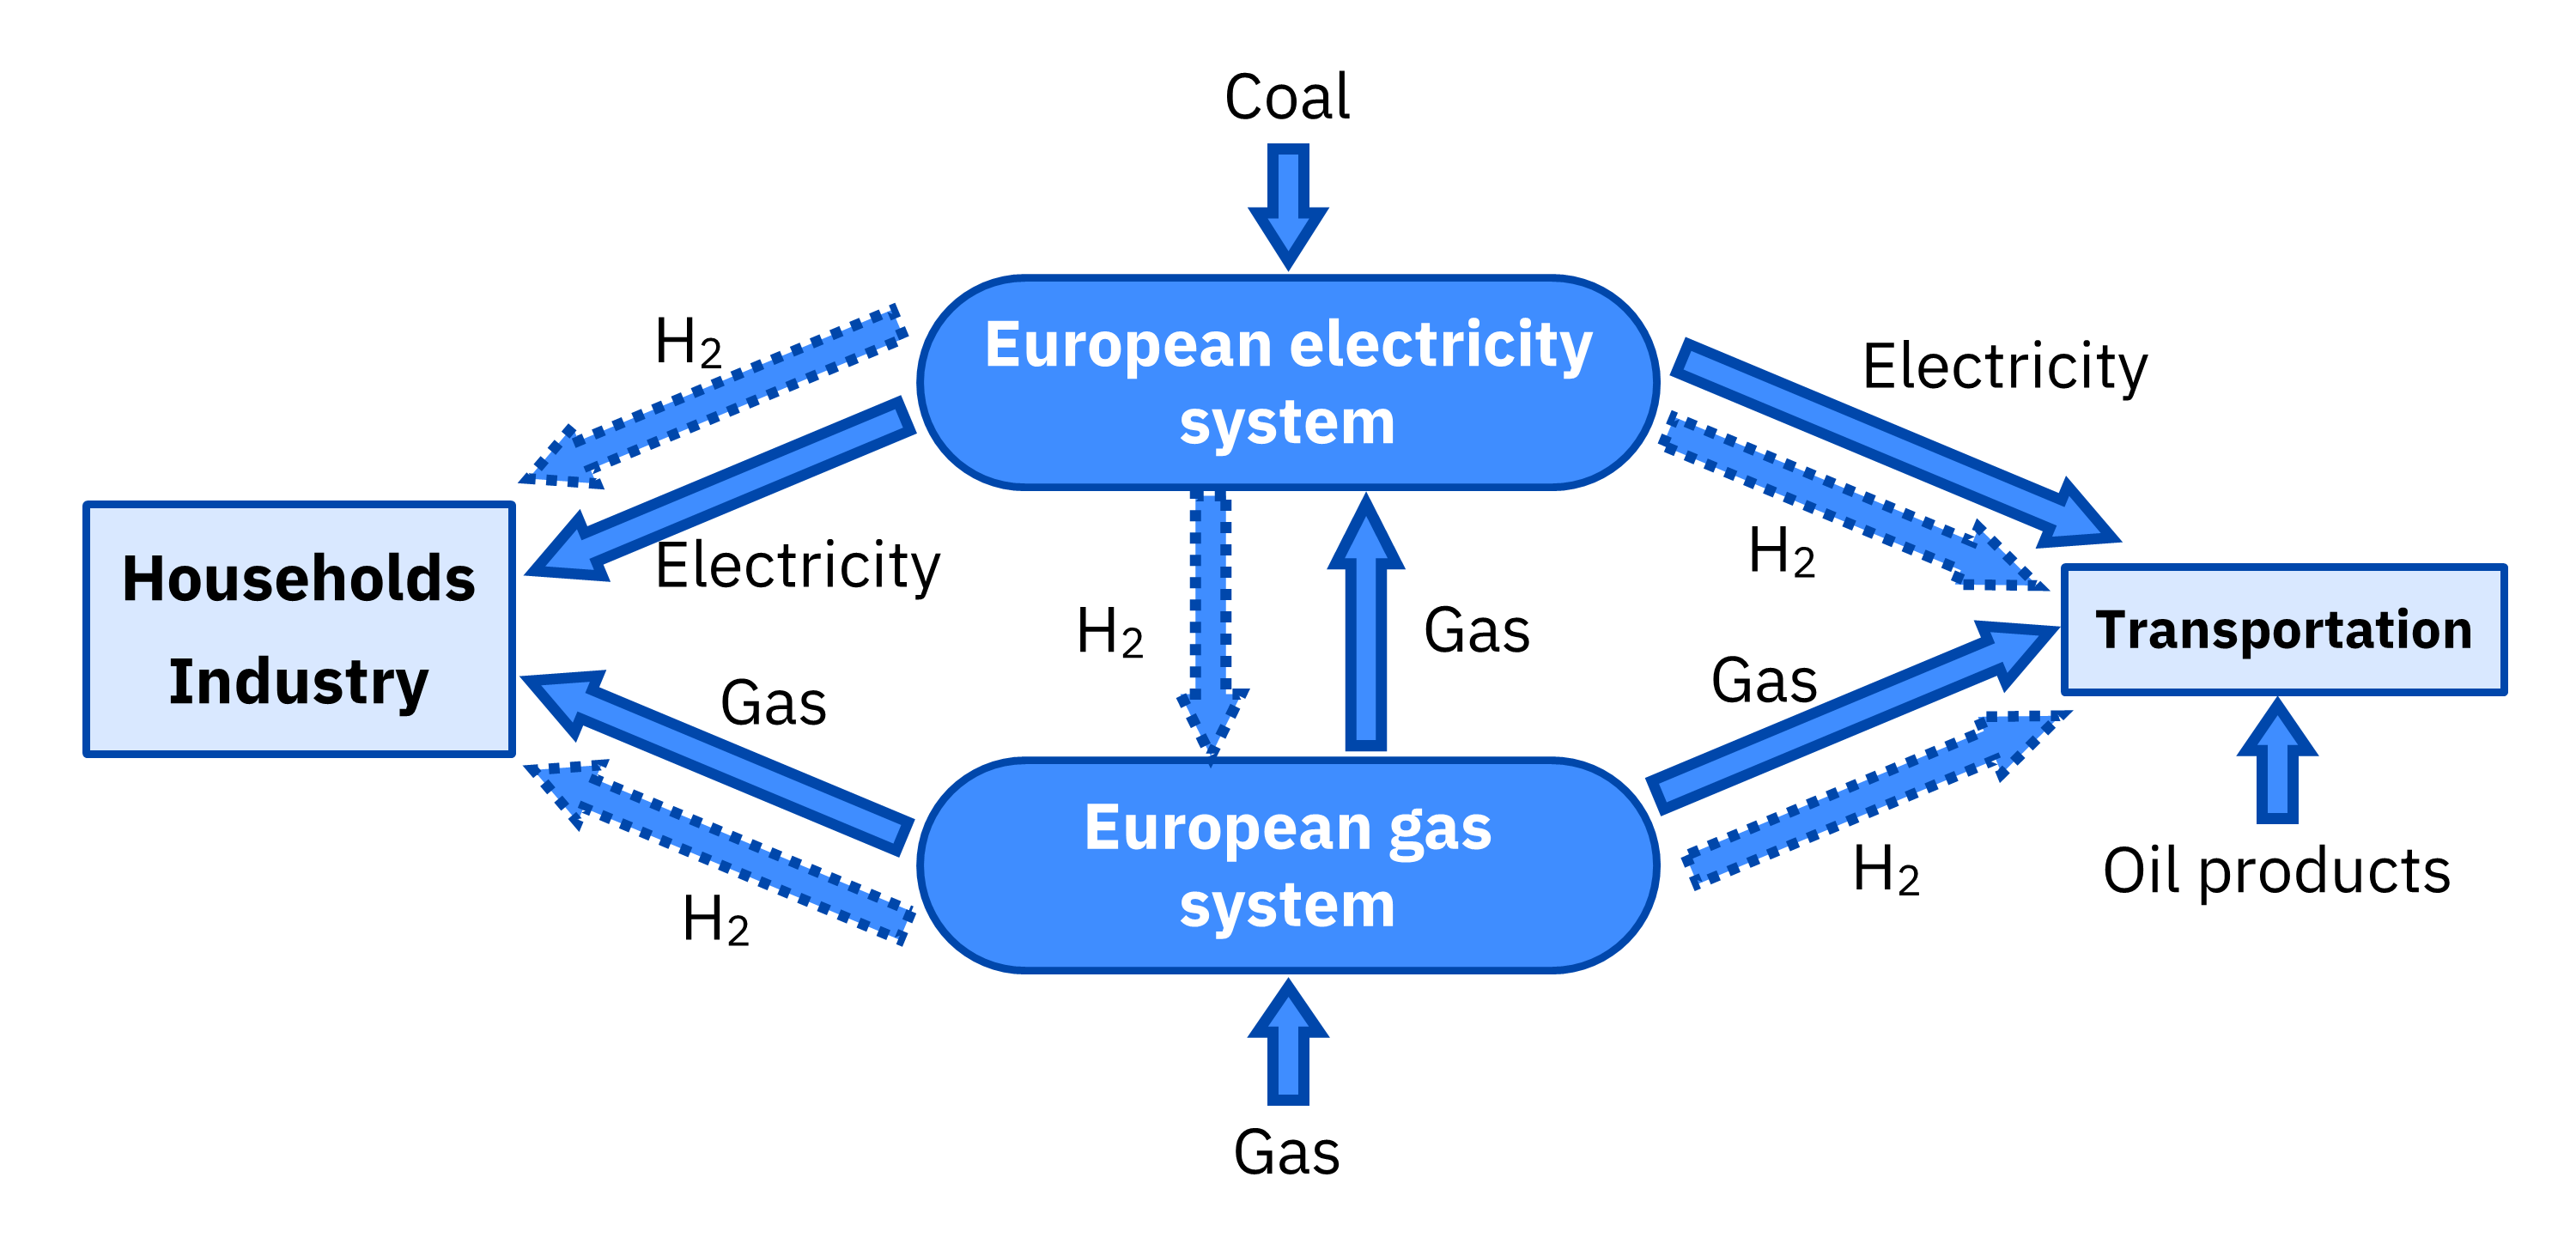 AleaSoft - Europe gas electricity system present